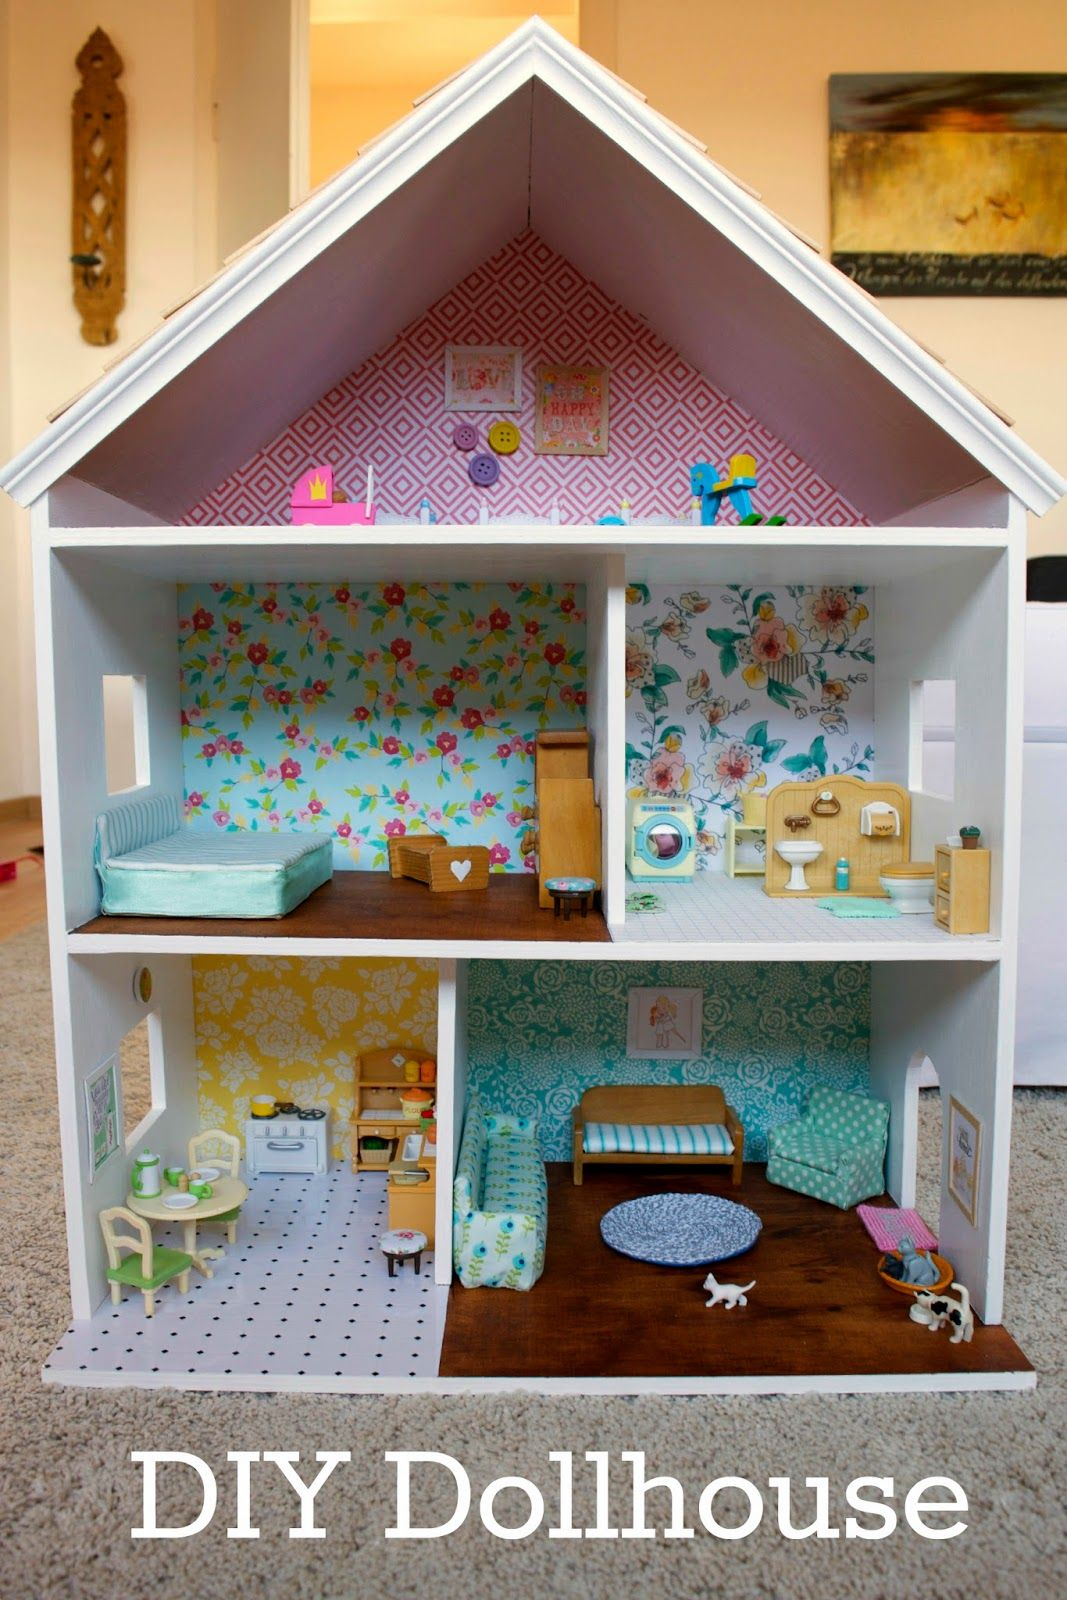 Diy sylvanian dollhouse house of wimm dollhouse diy sylvanian